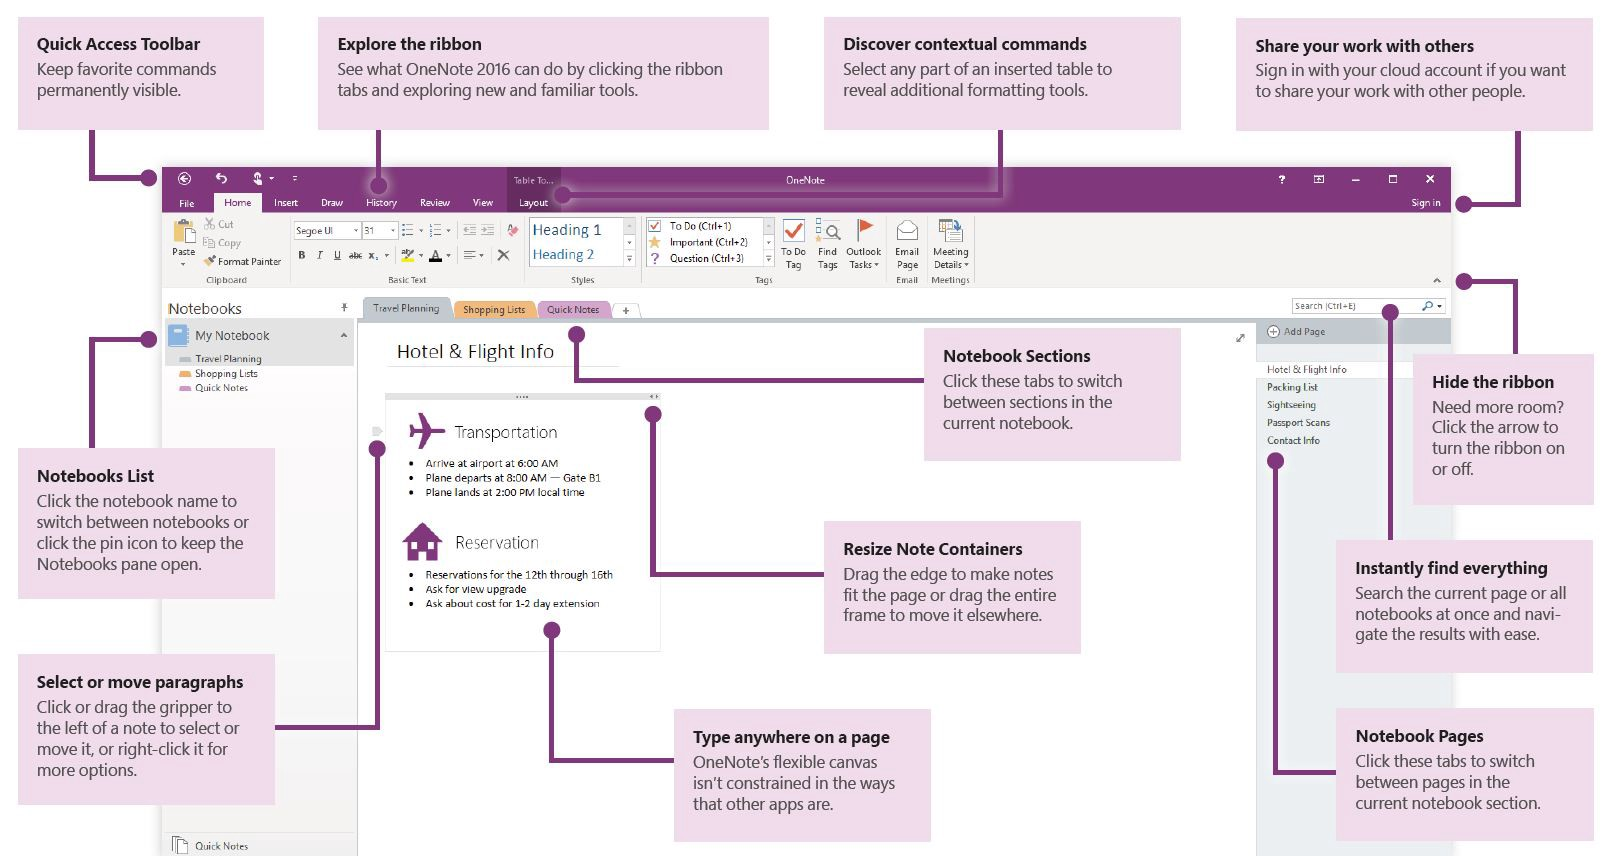 11 Tips for Improving Productivity using OneNote - Better